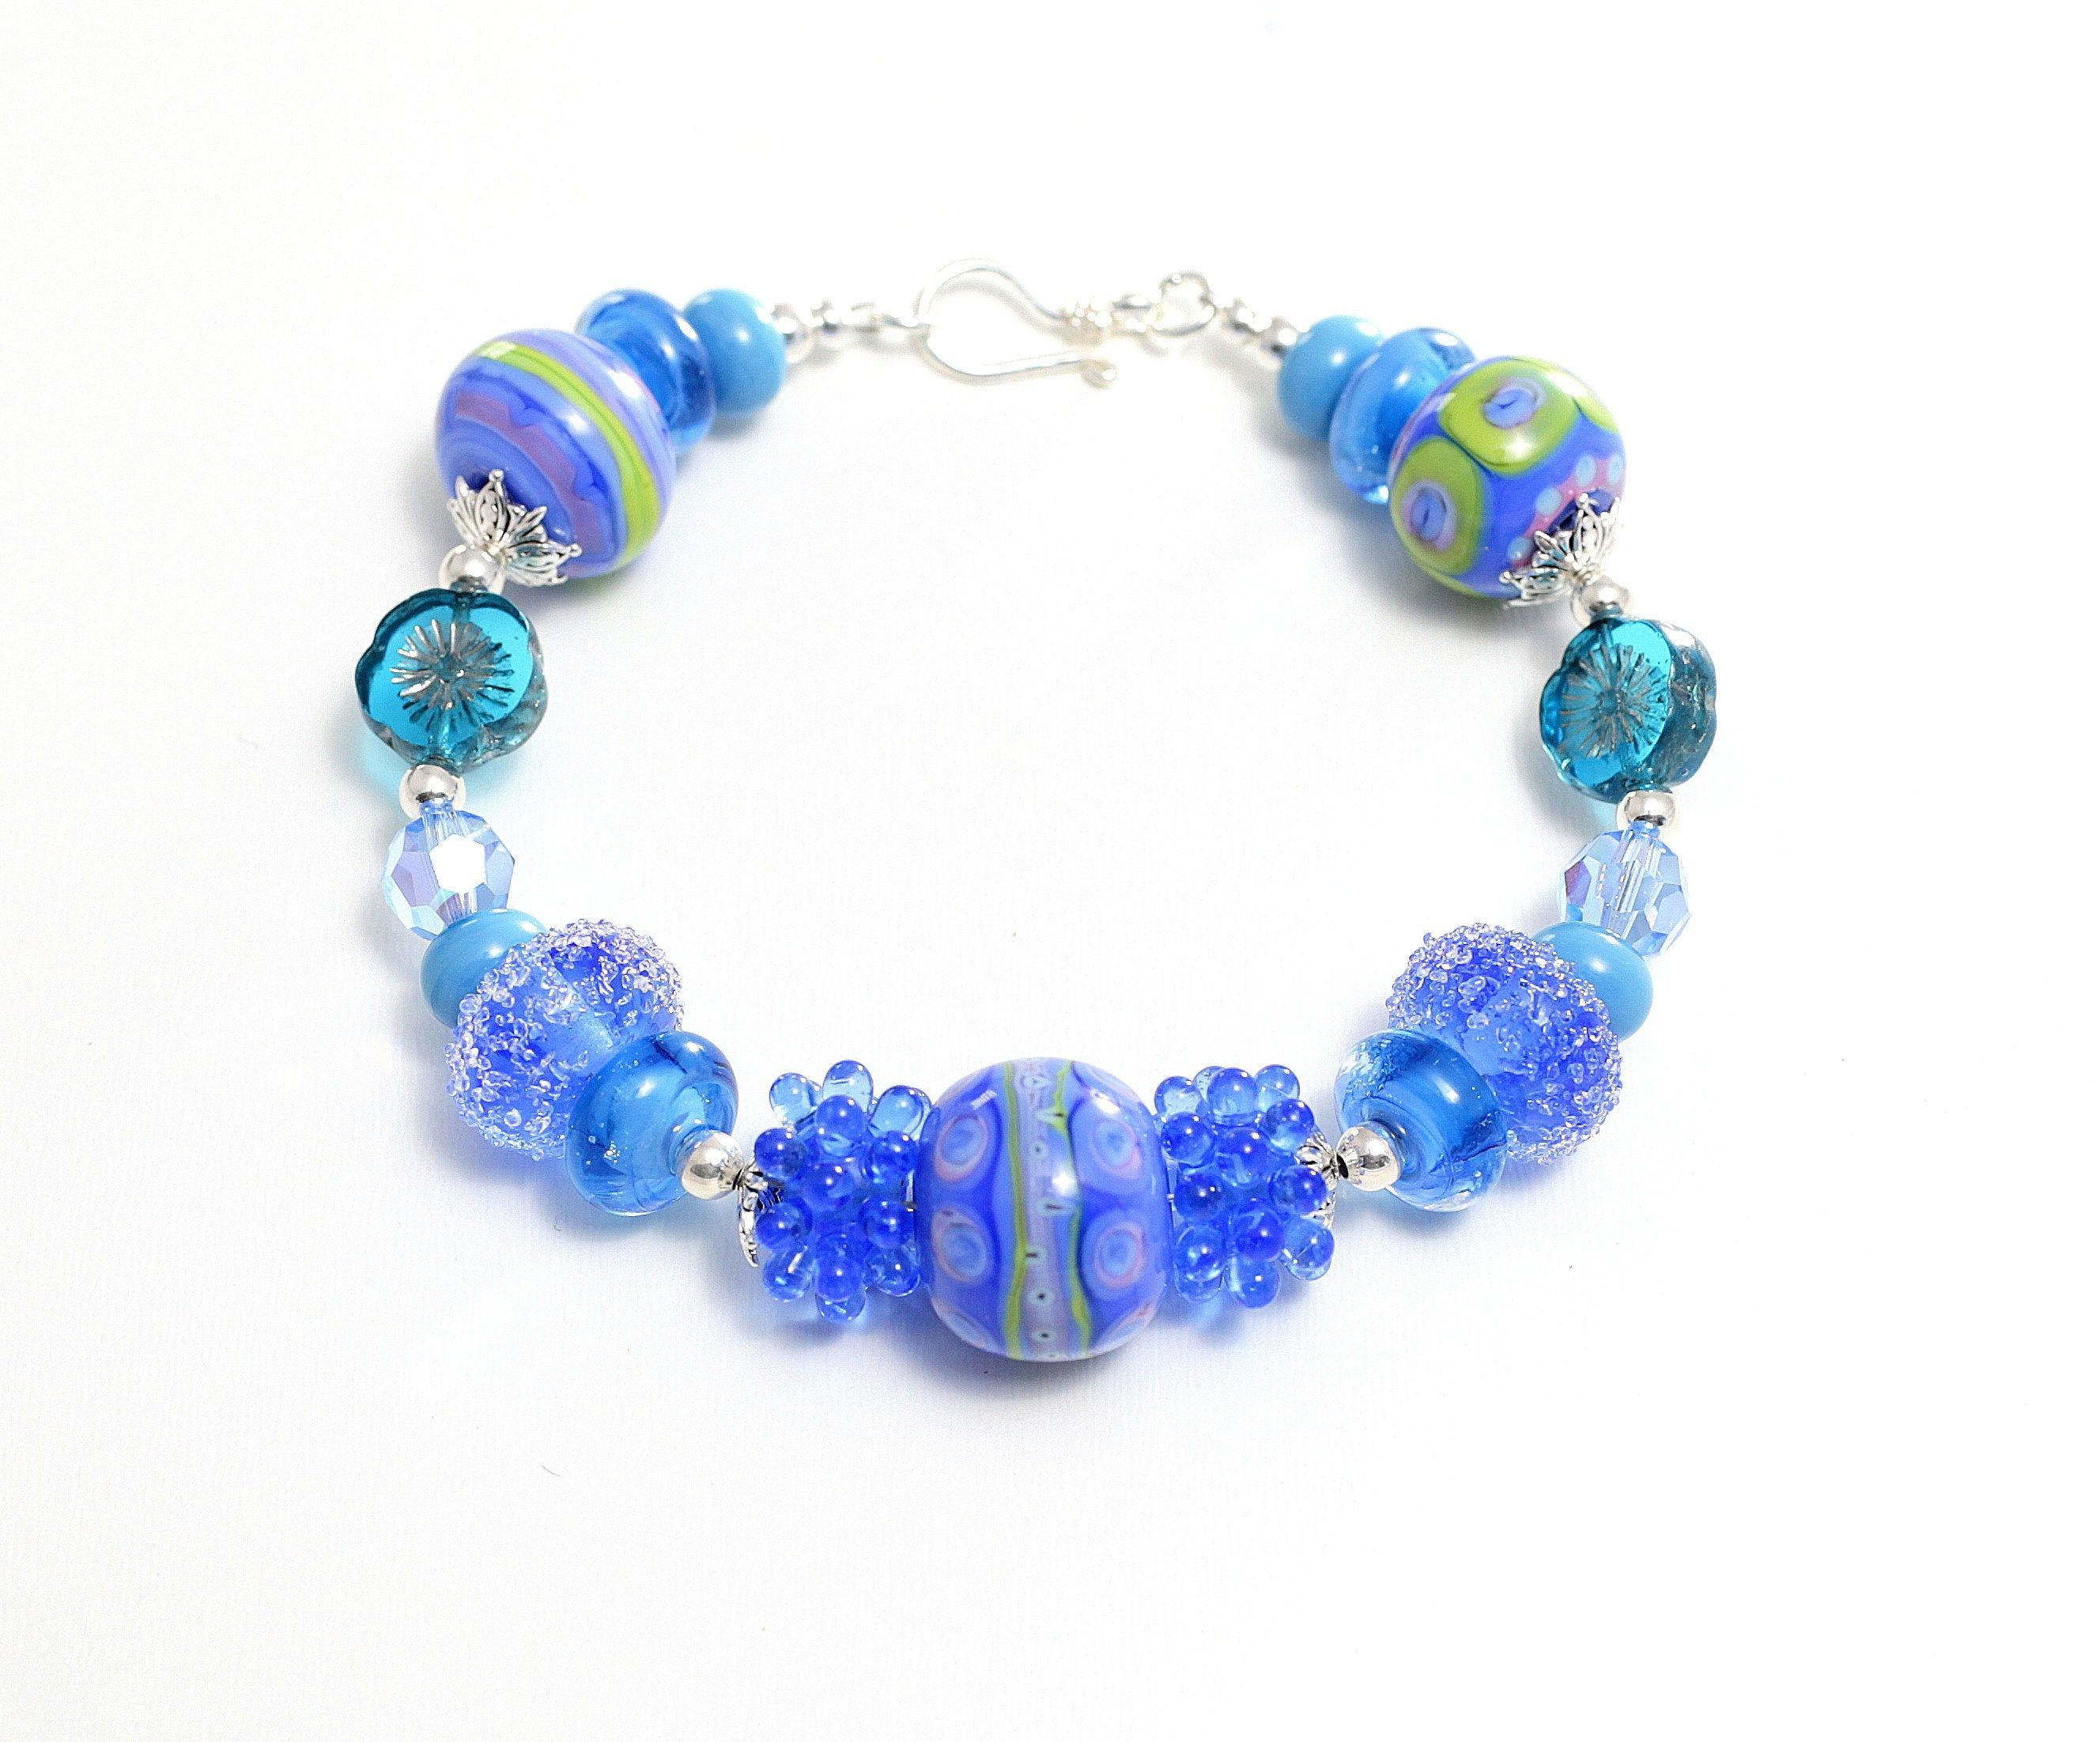 Shades of Blue Lampwork Necklace with Sterling Silver Claps and Accents